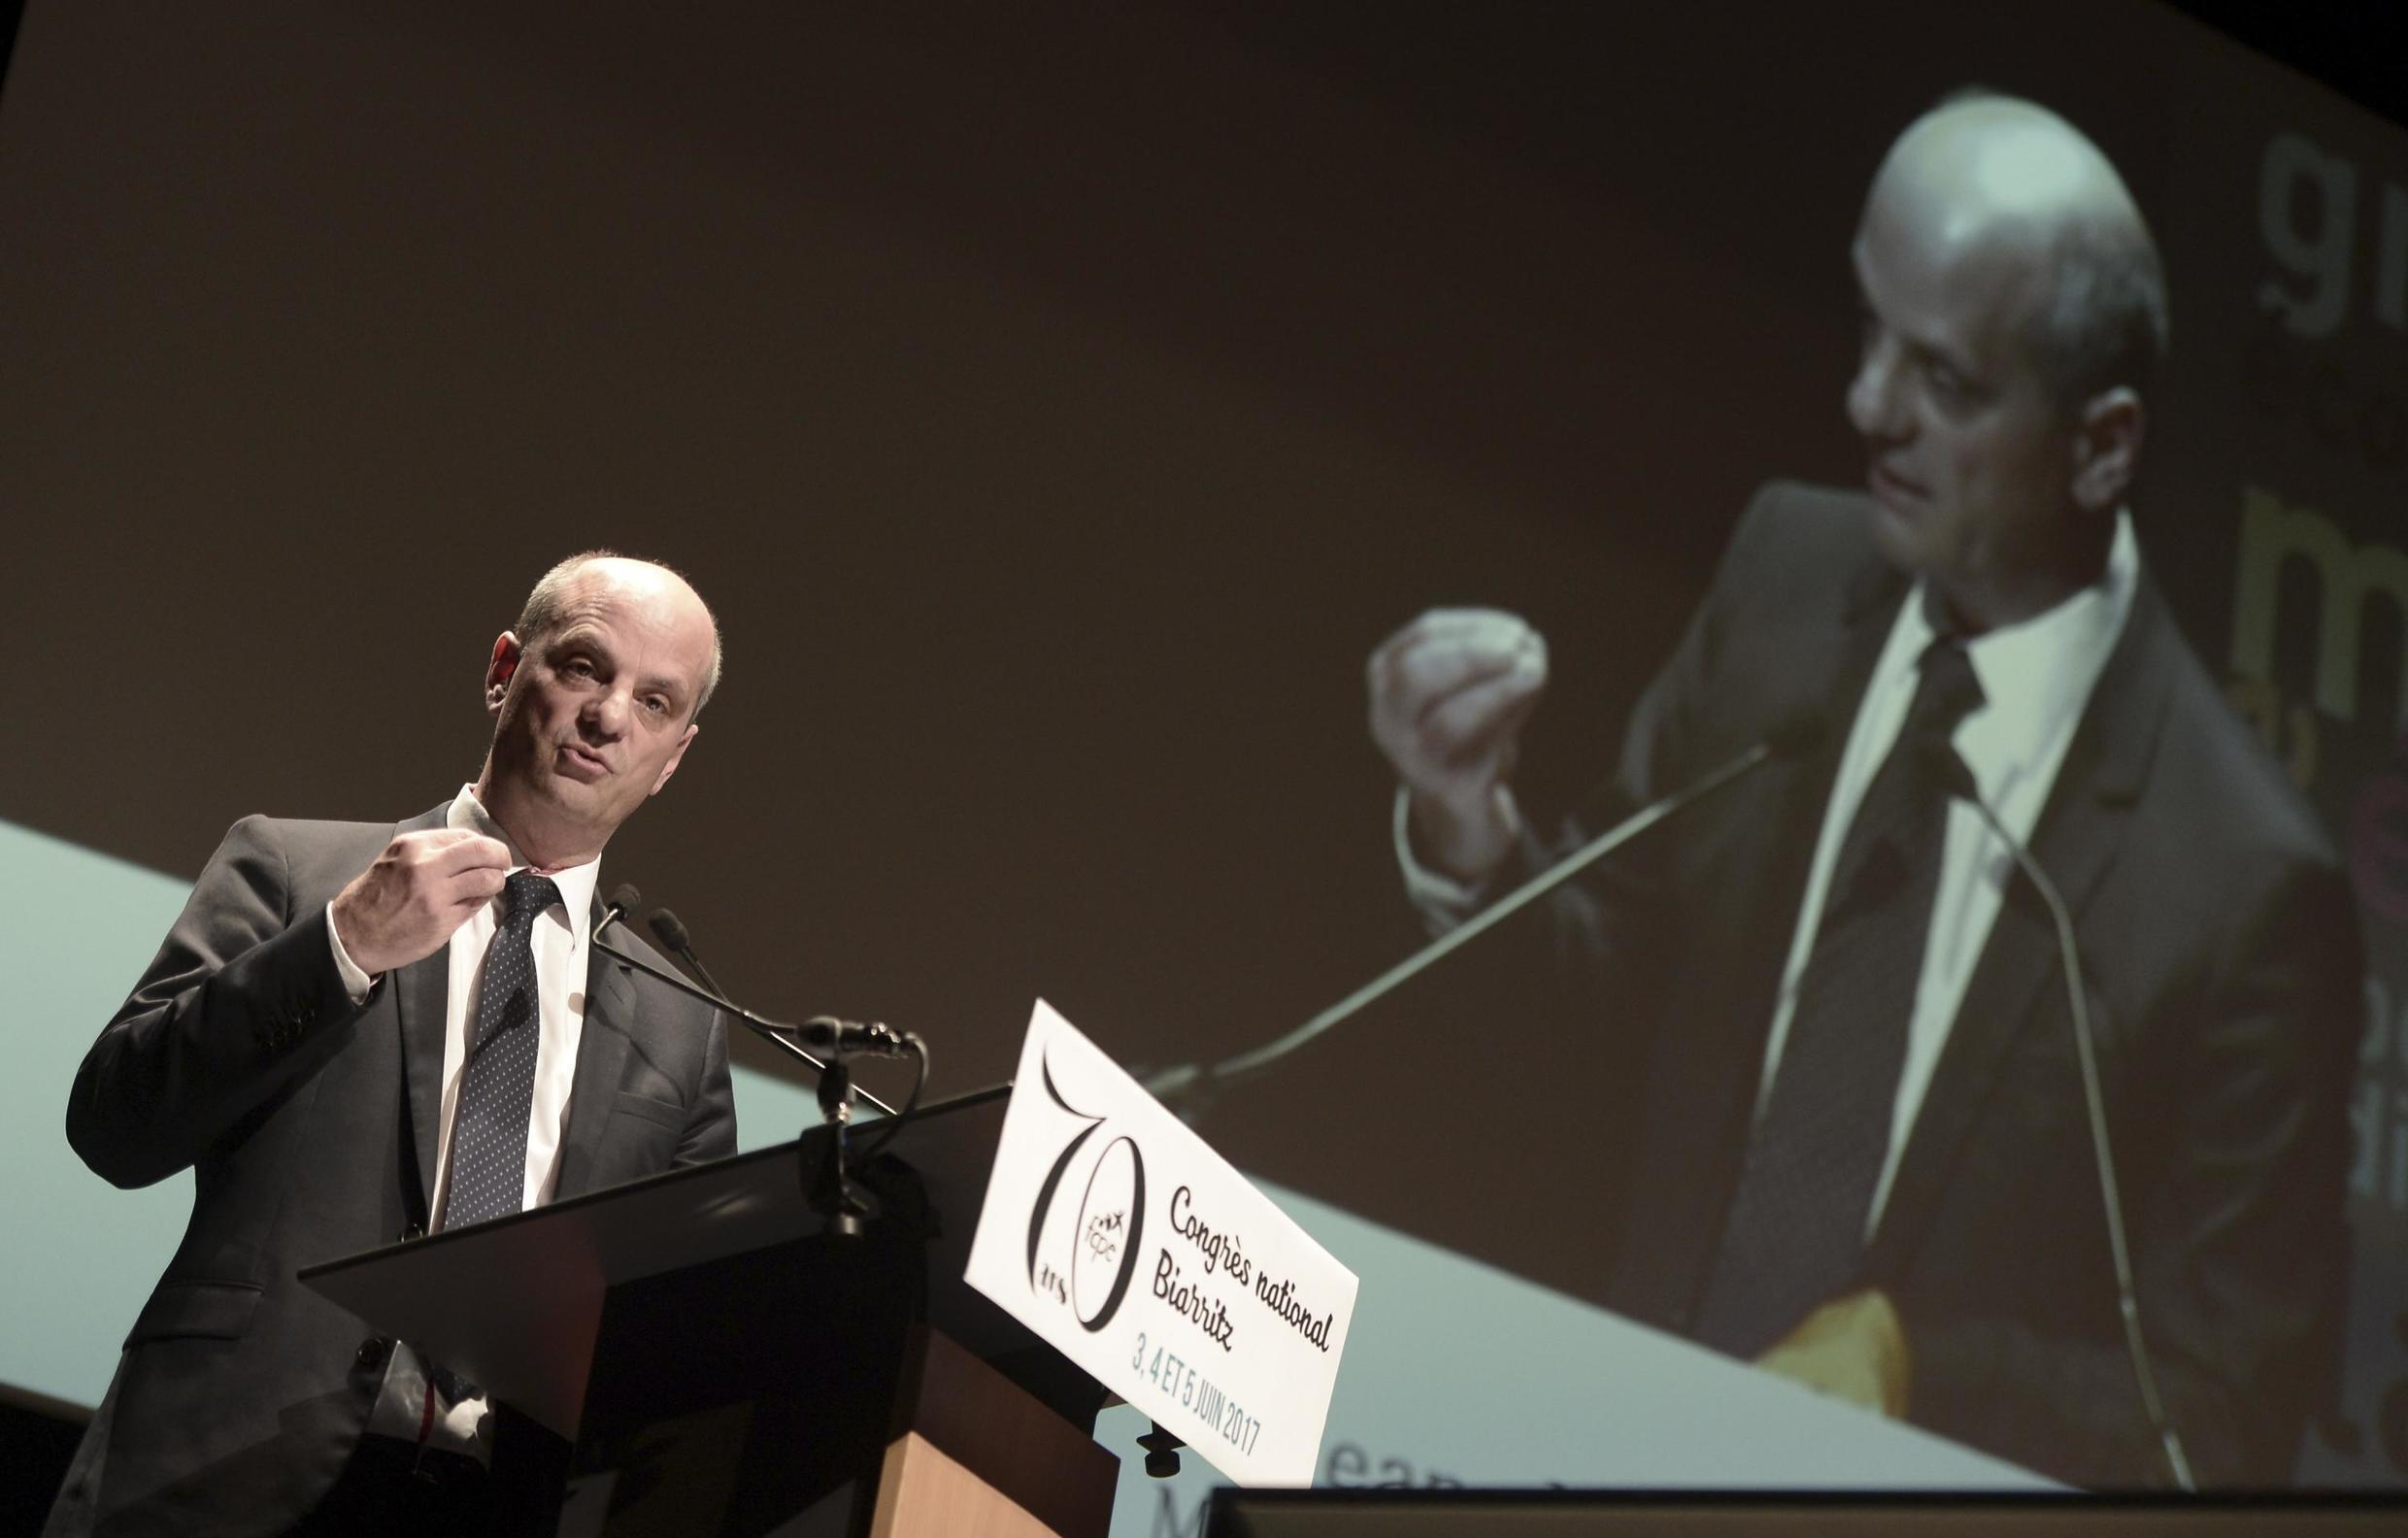 French Minister of National Education Jean-Michel Blanquer delivers a speech during the 70th Congress of the Federation of parents of pupils (FCPE - Federation des Conseils de Parents d'Eleves) in Biarritz on June 3, 2017